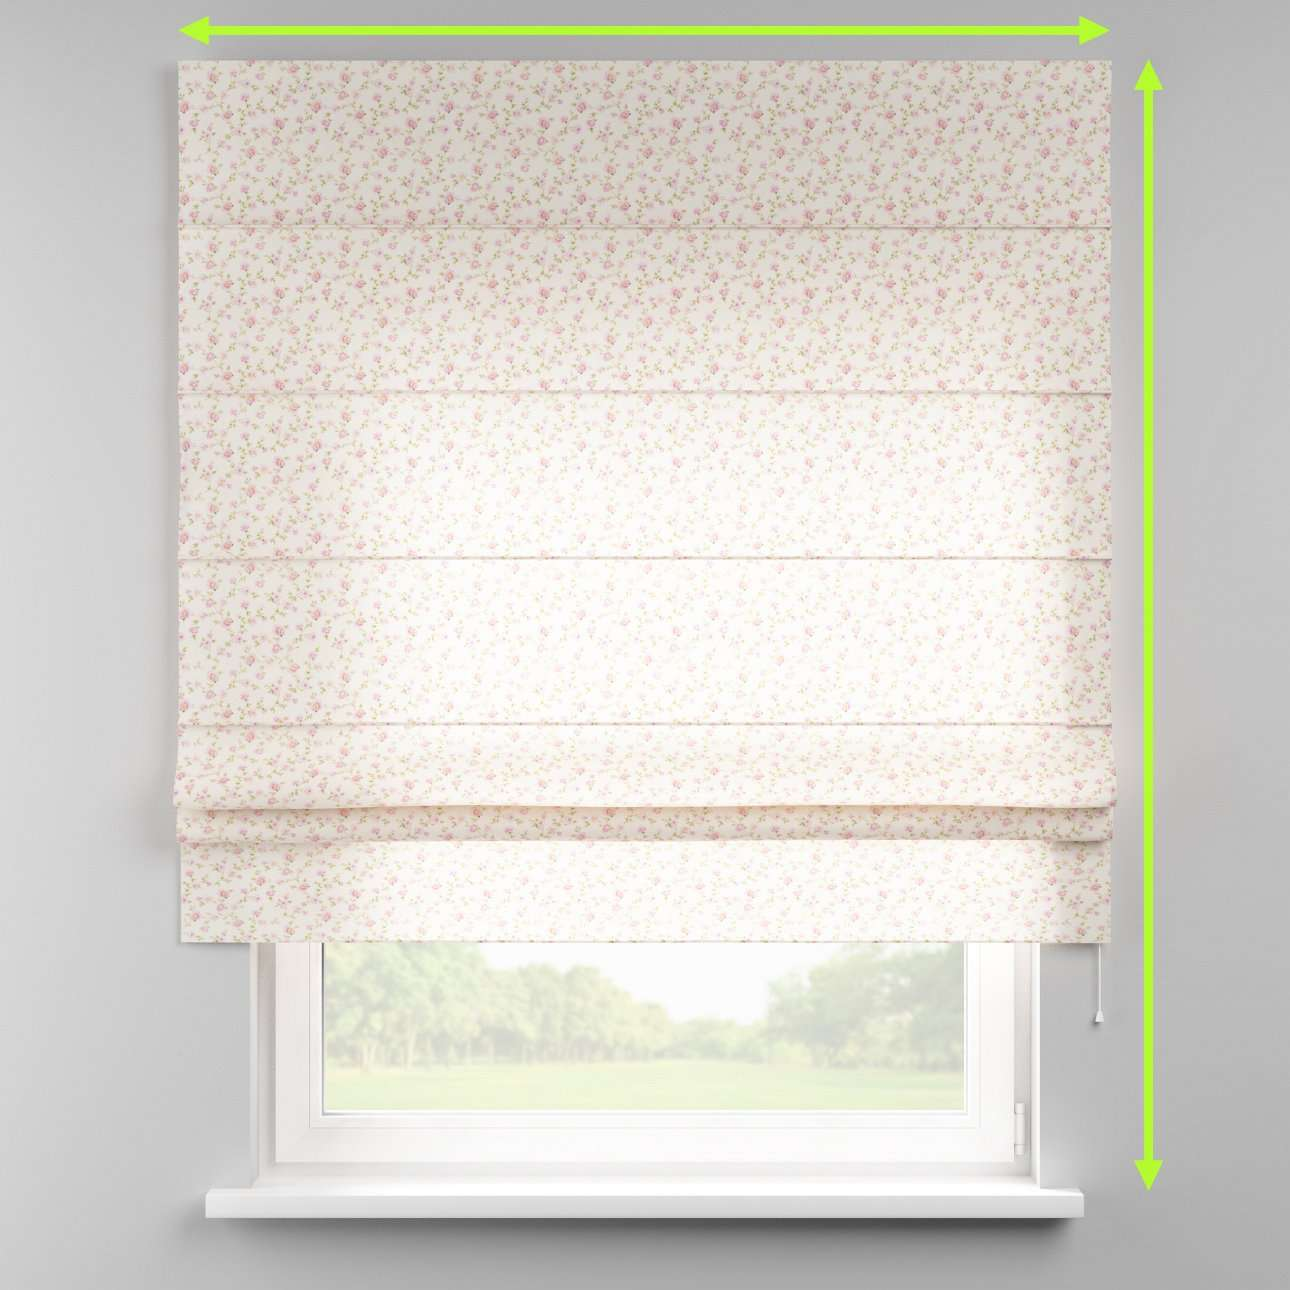 Padva roman blind  in collection Ashley, fabric: 137-45